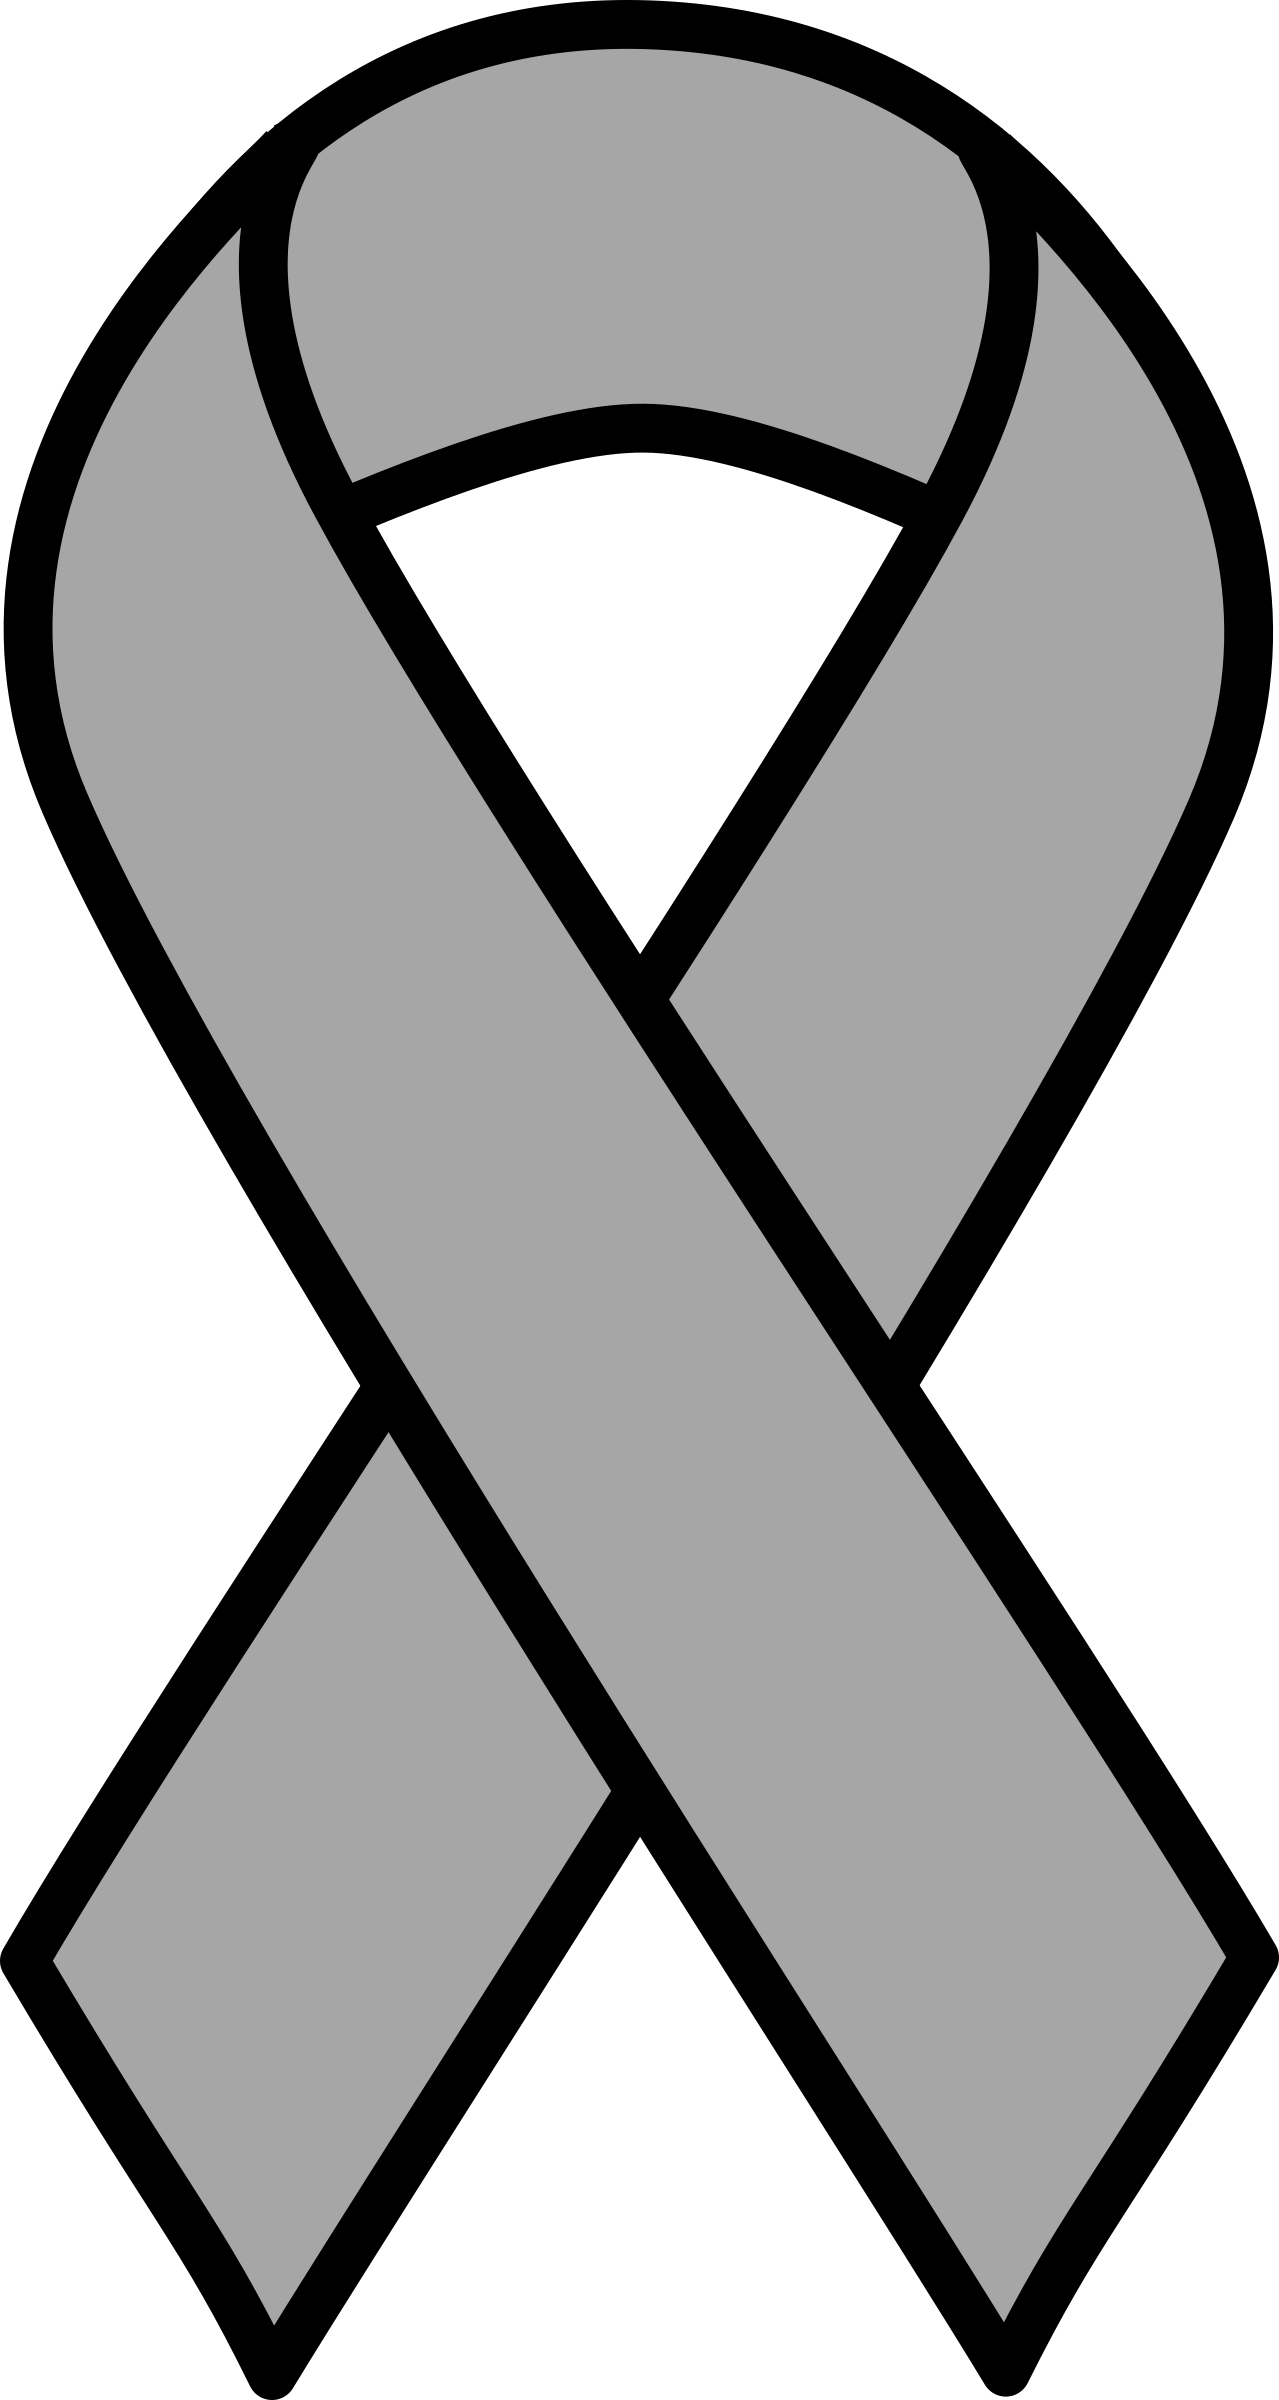 02f2d87bbd5 Cancer Ribbon Clipart Black And White | Free download best Cancer ...